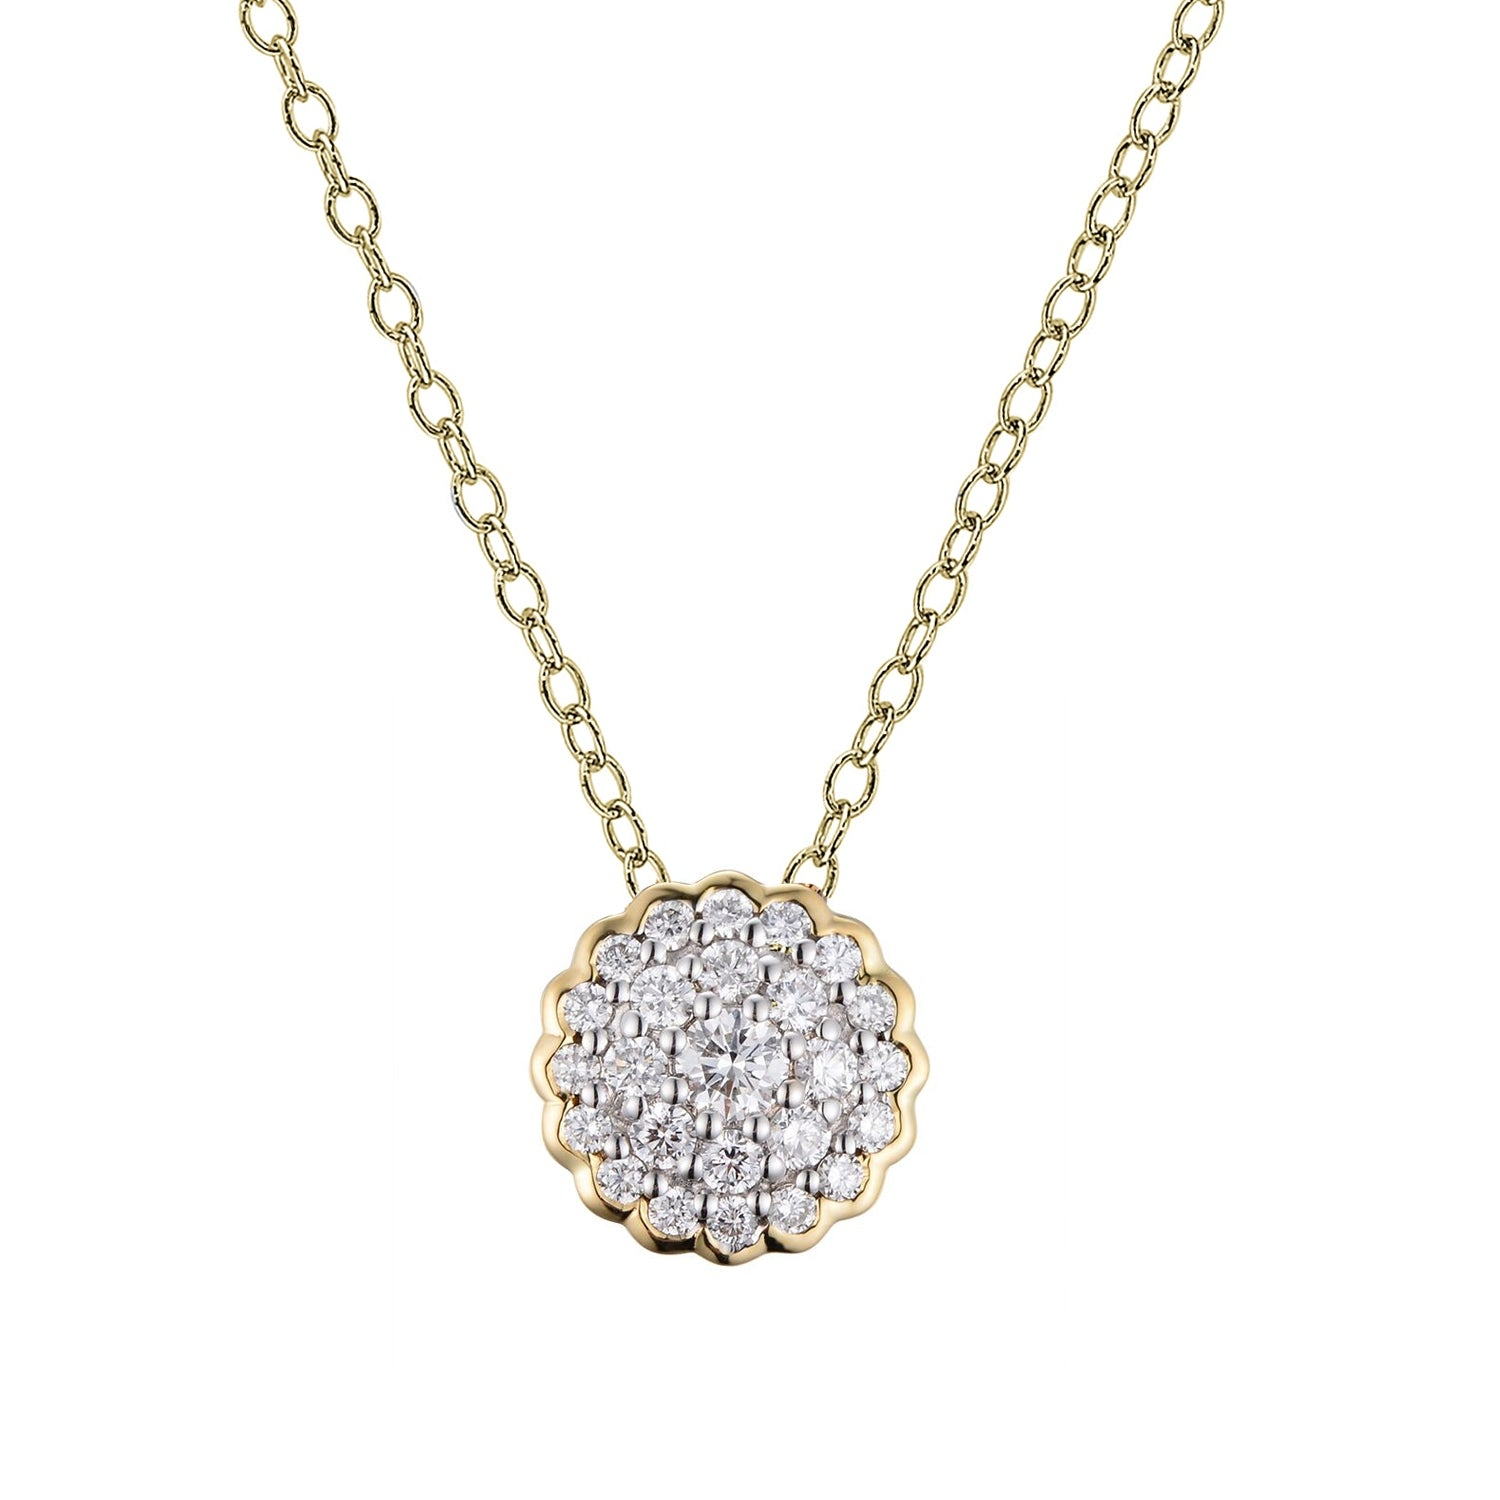 Two Tone Pavé Diamond Disc Necklace, 14 Karat Gold